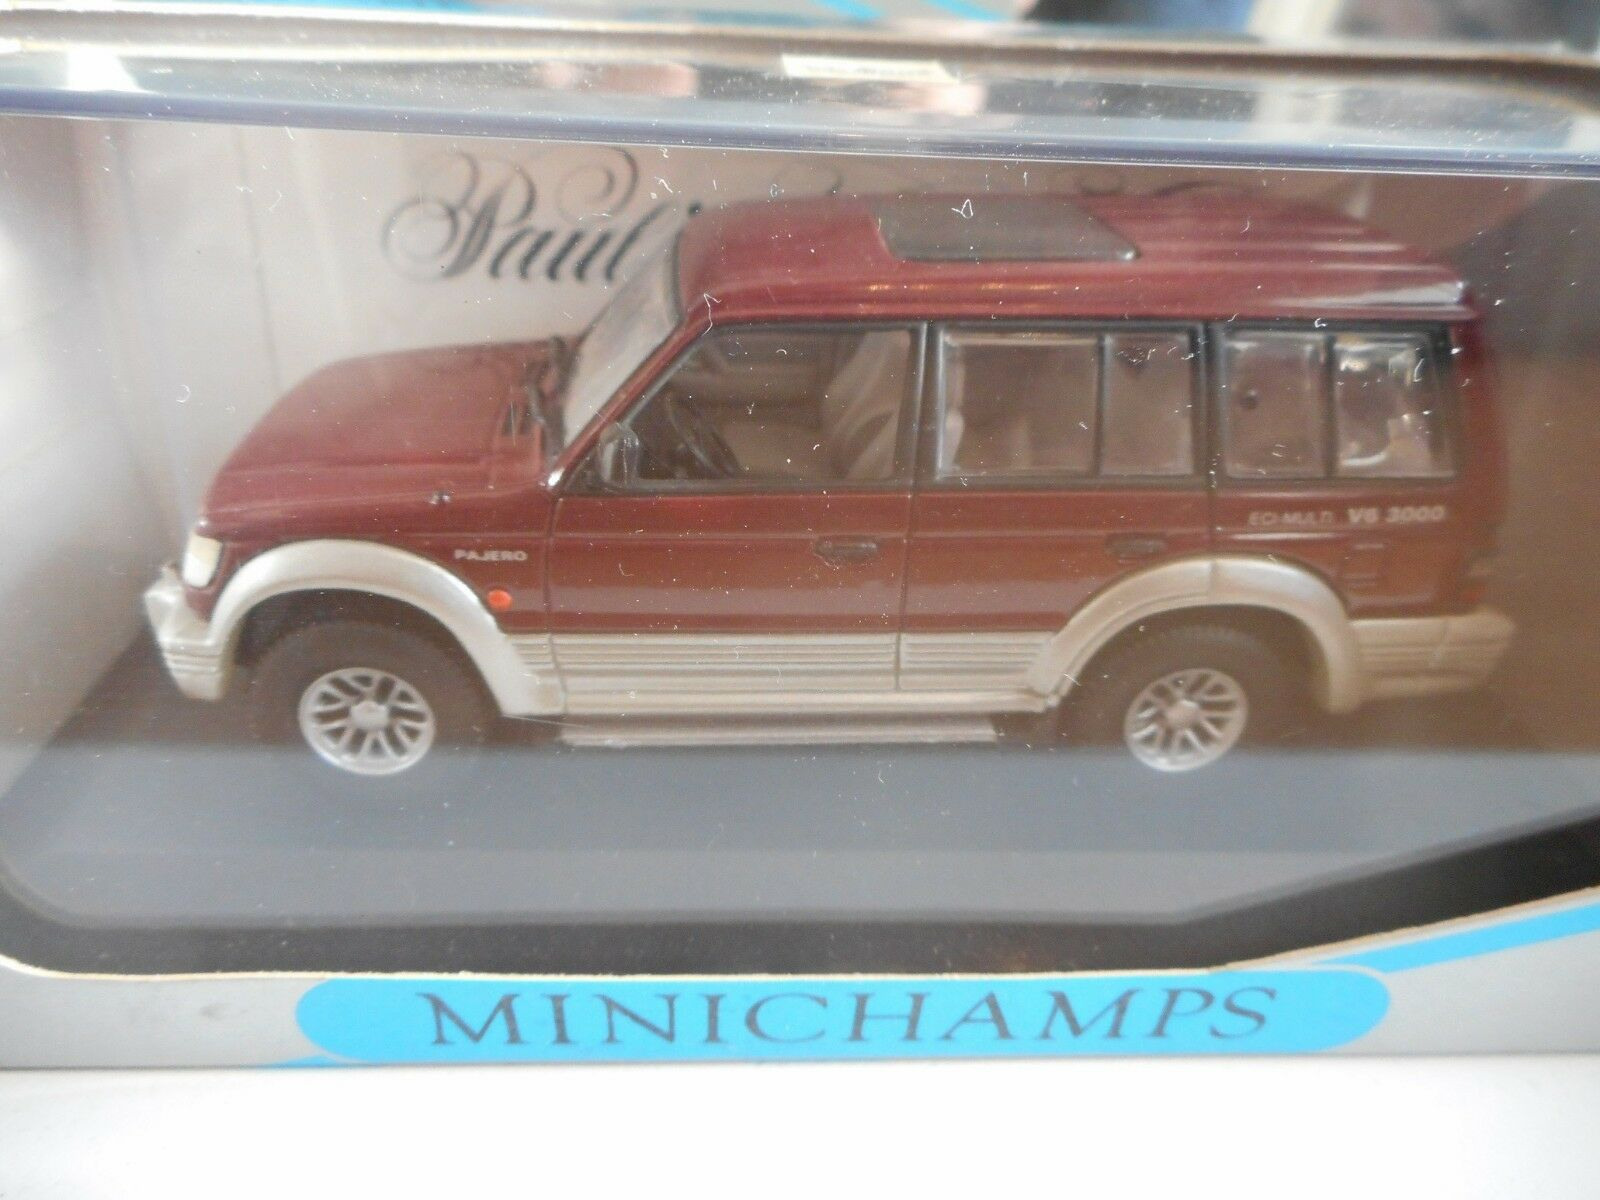 Minichamps Minichamps Minichamps Mitsubishi Pajero LWB in Dark Red on 1 43 in Box 326771